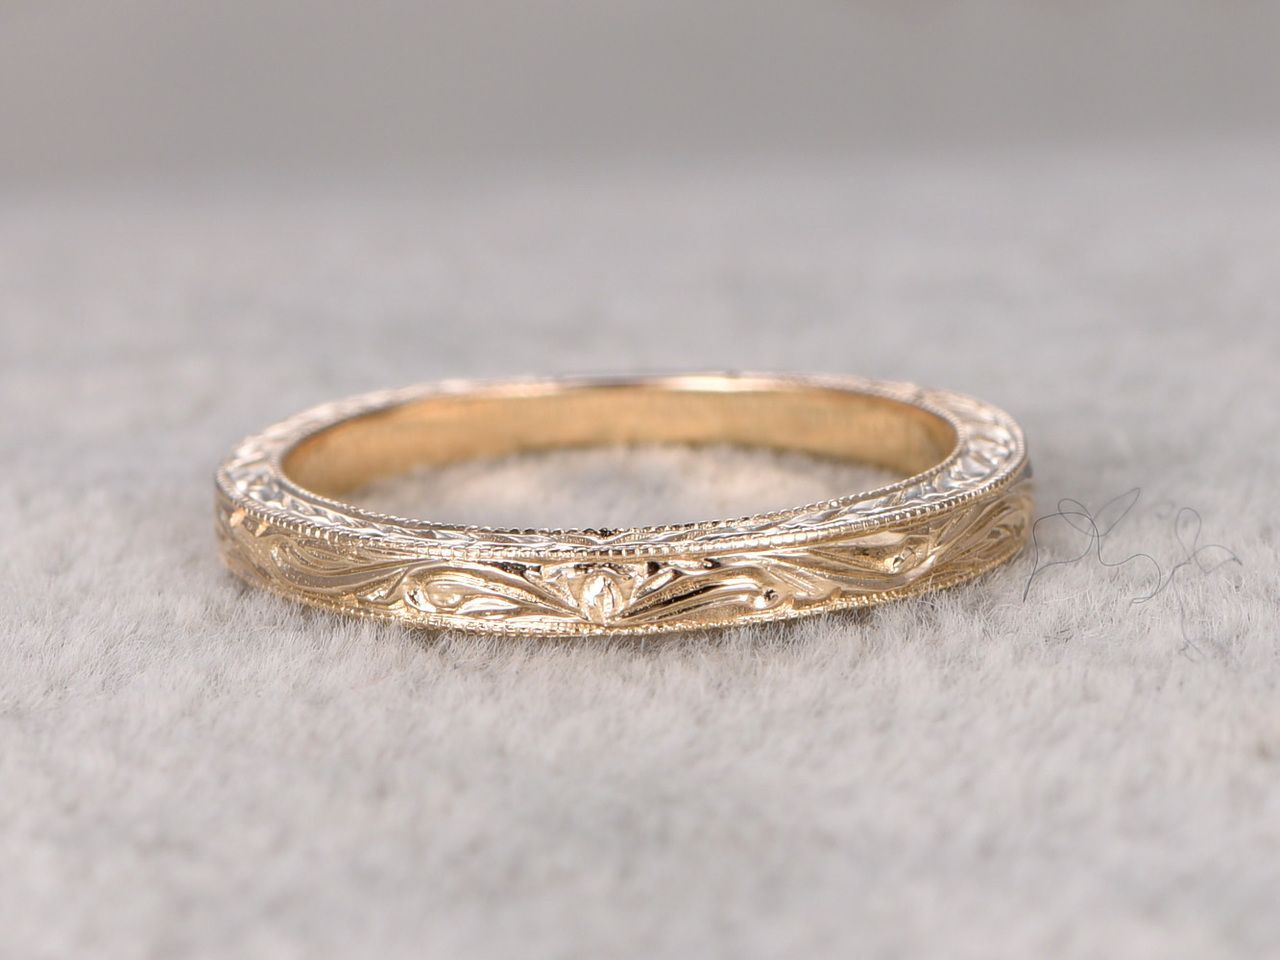 Antique Wedding Band Solid 14k Yellow Gold Filigree Flower Annivesary Ring Antique Wedding Rings Antique Wedding Bands Filigree Wedding Band